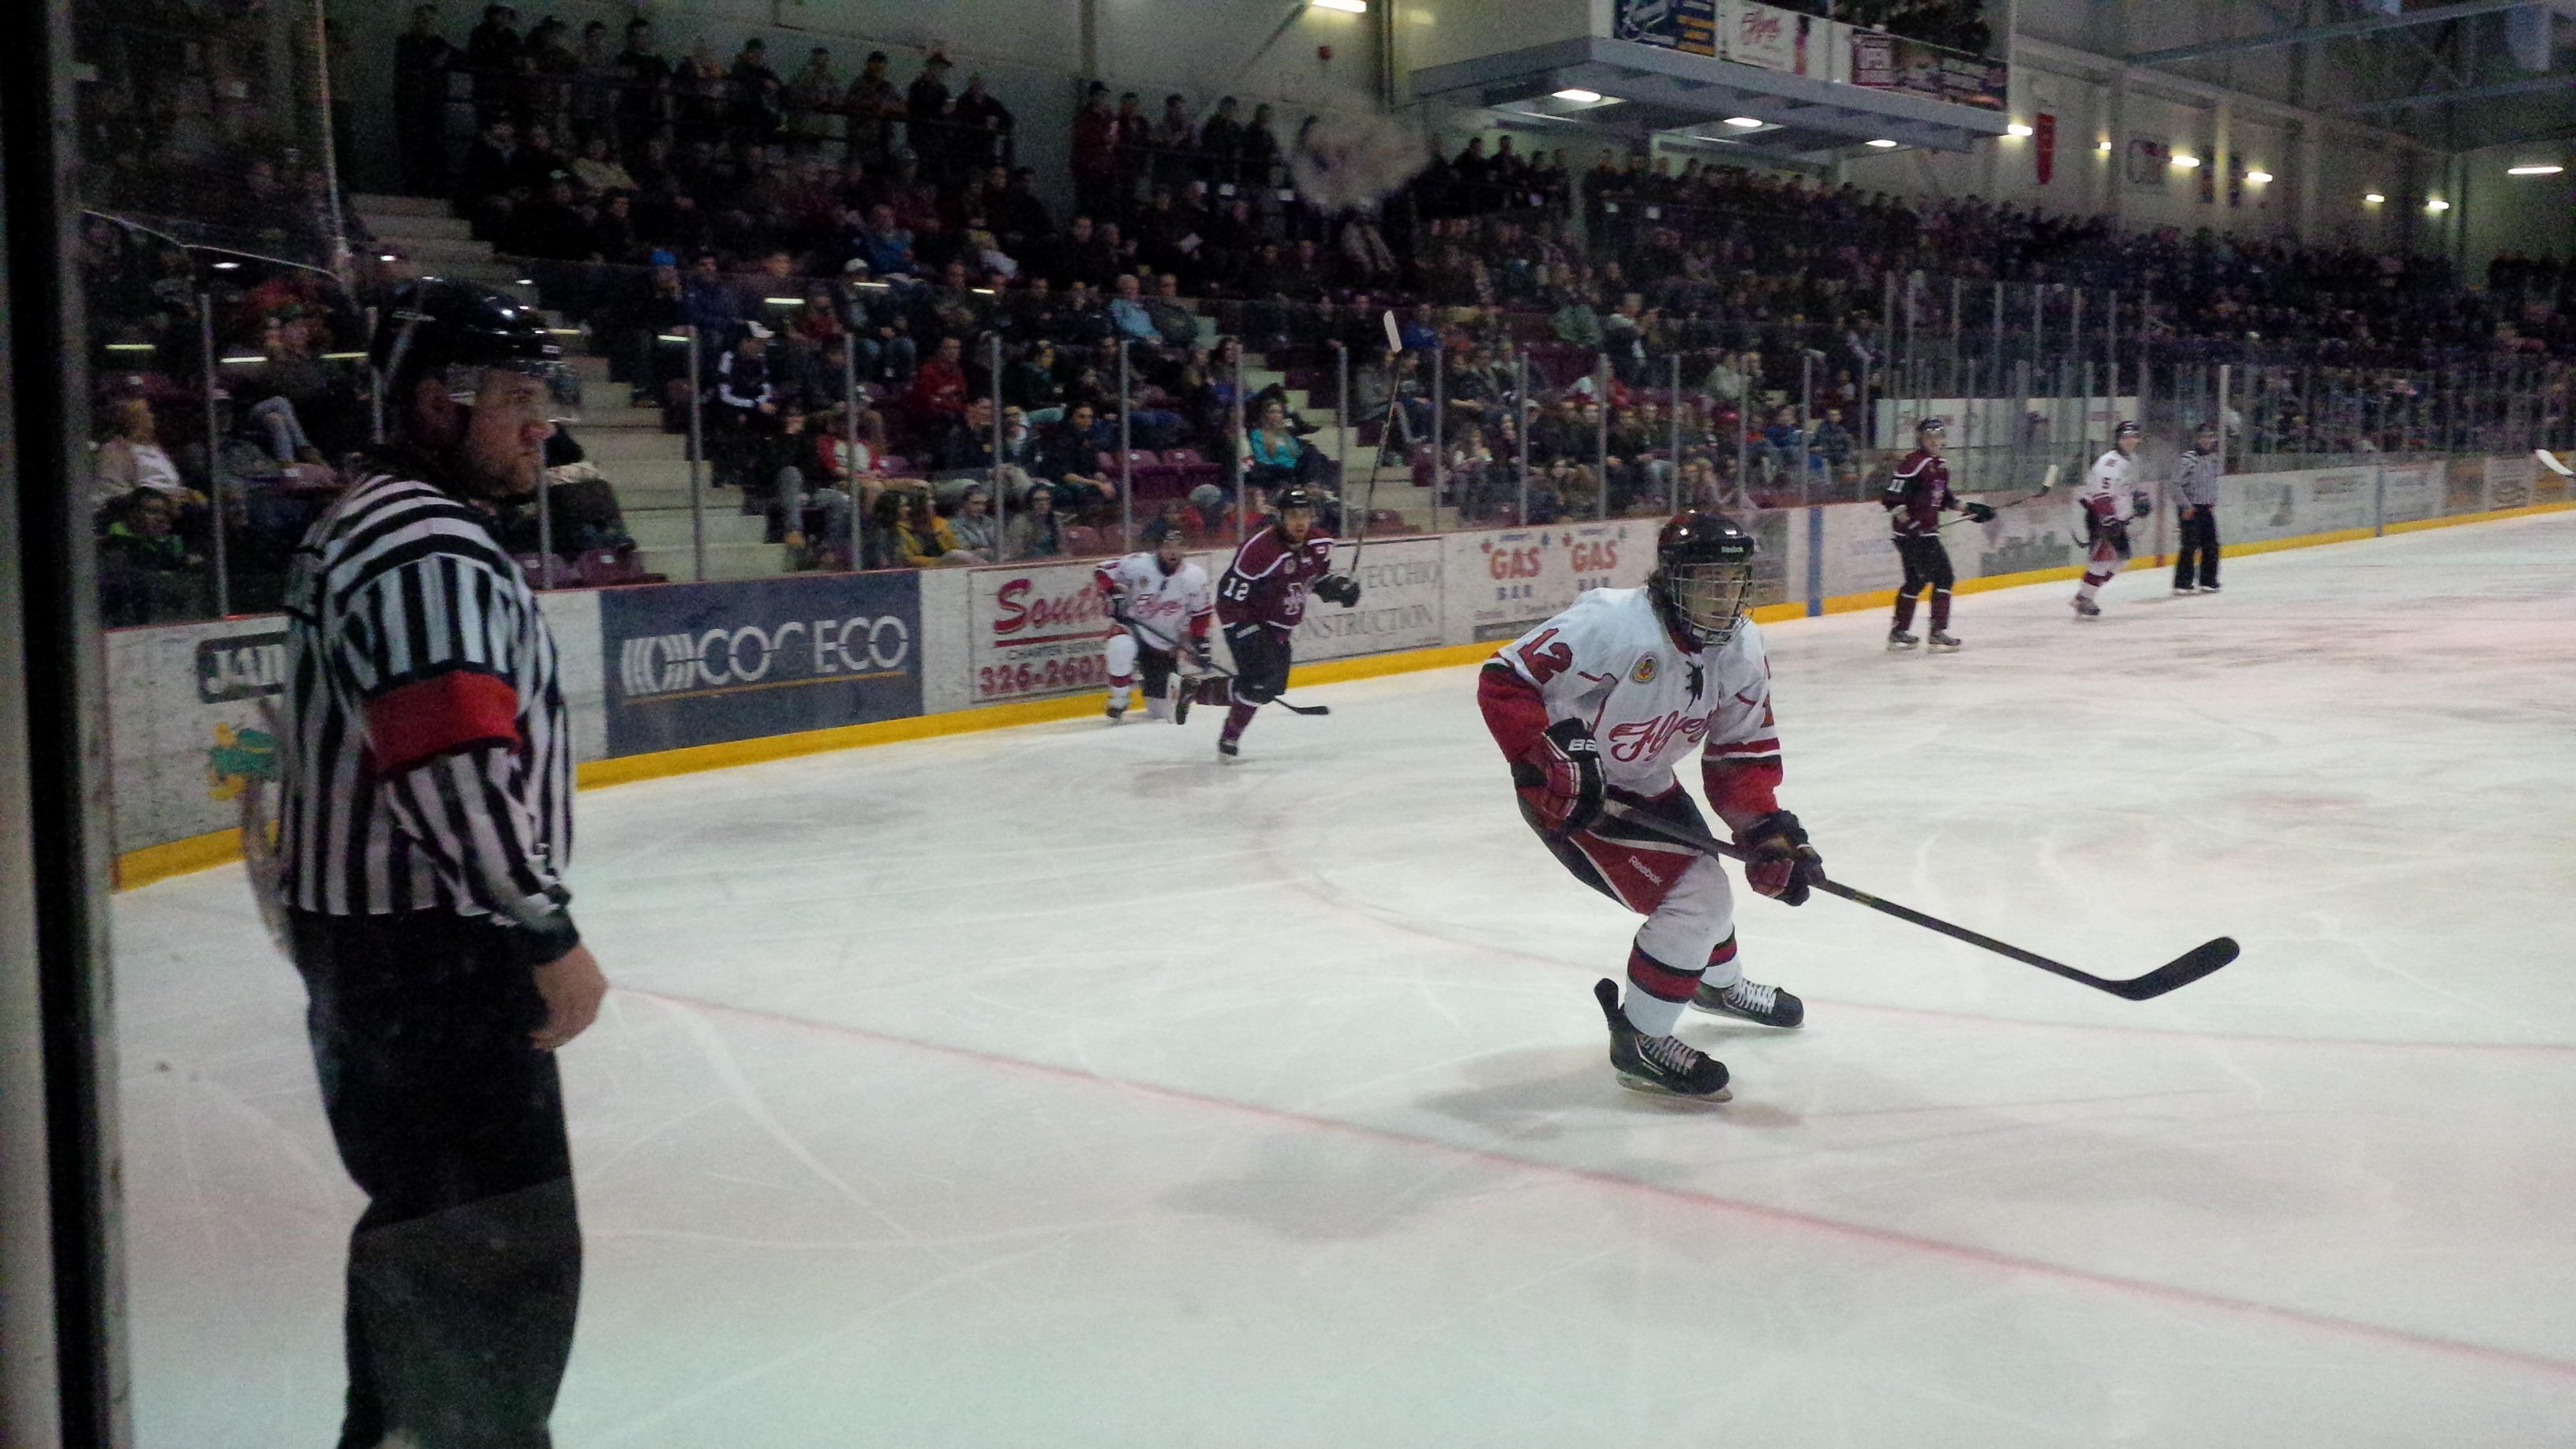 The Leamington Flyers host the Chatham Maroons in Game 1 of the GOJHL West Final on March 27, 2014. (Photo by Ricardo Veneza)